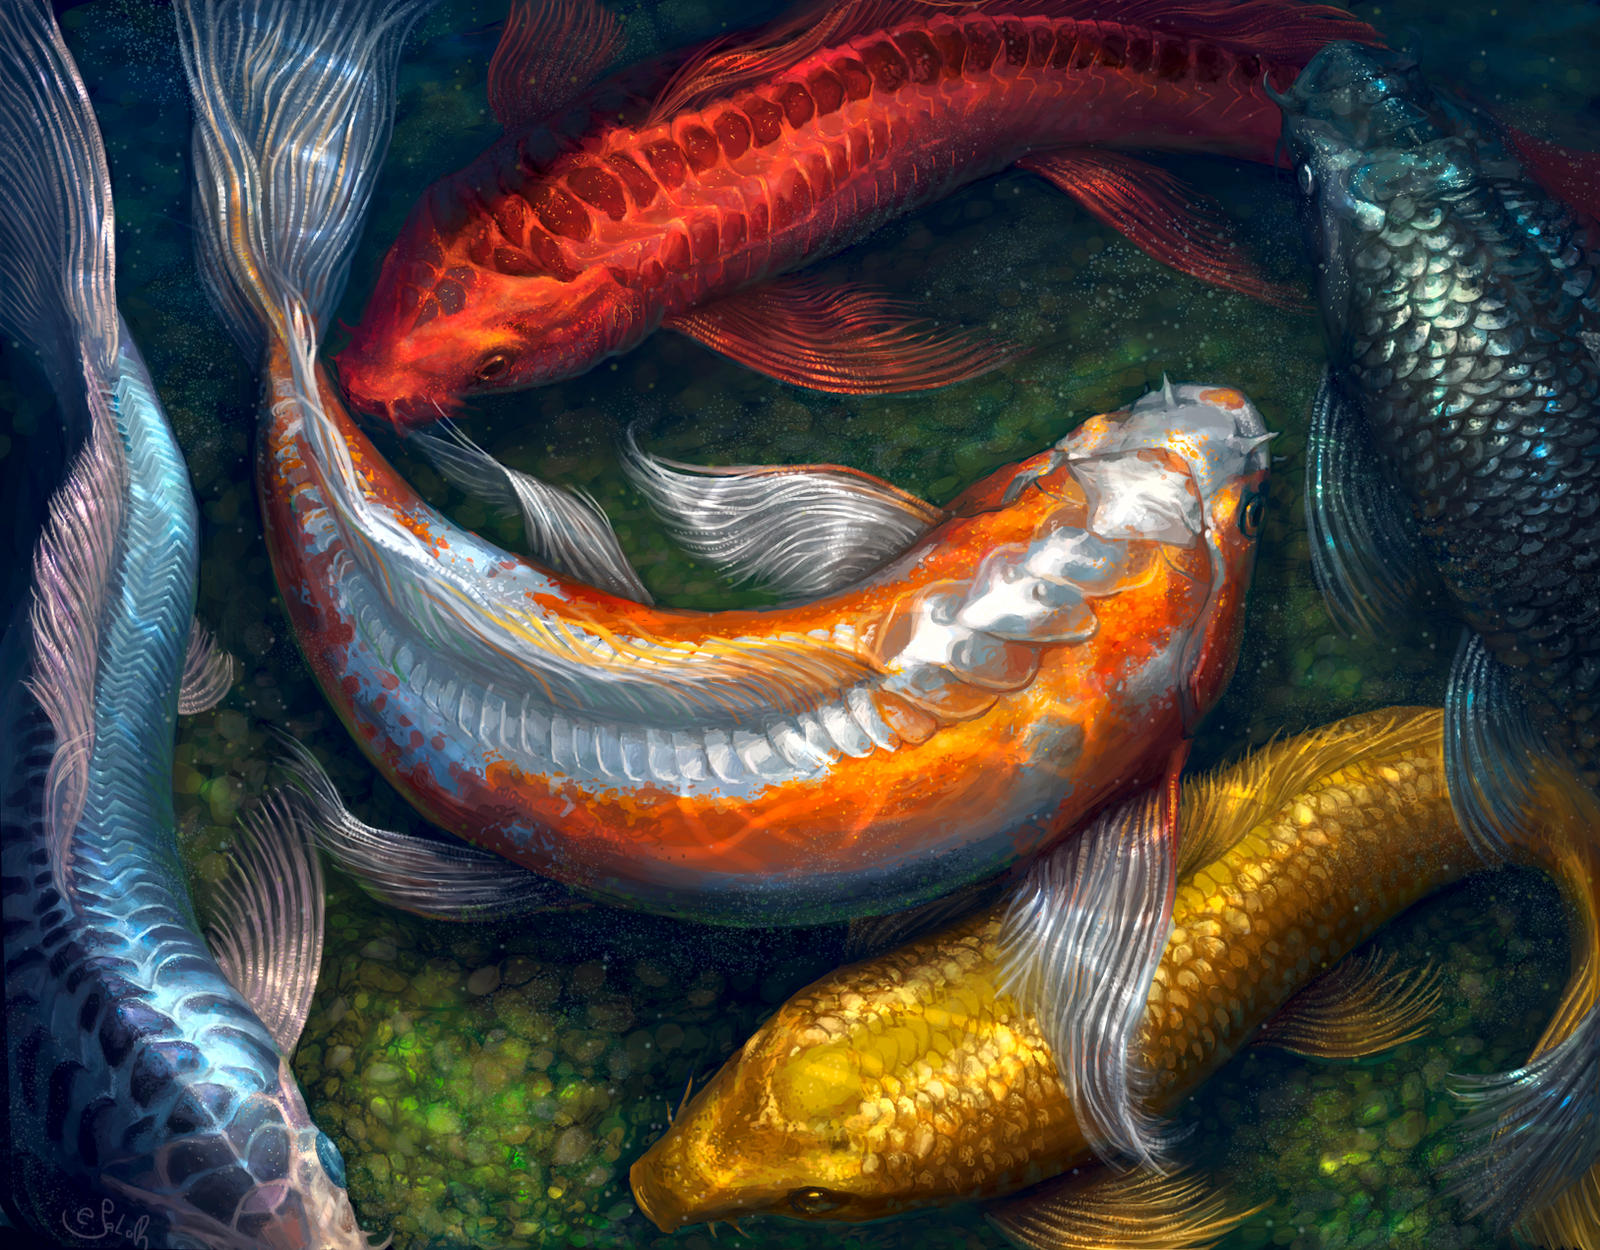 Rainbow Koi Pond 2 by Sarahlyyn